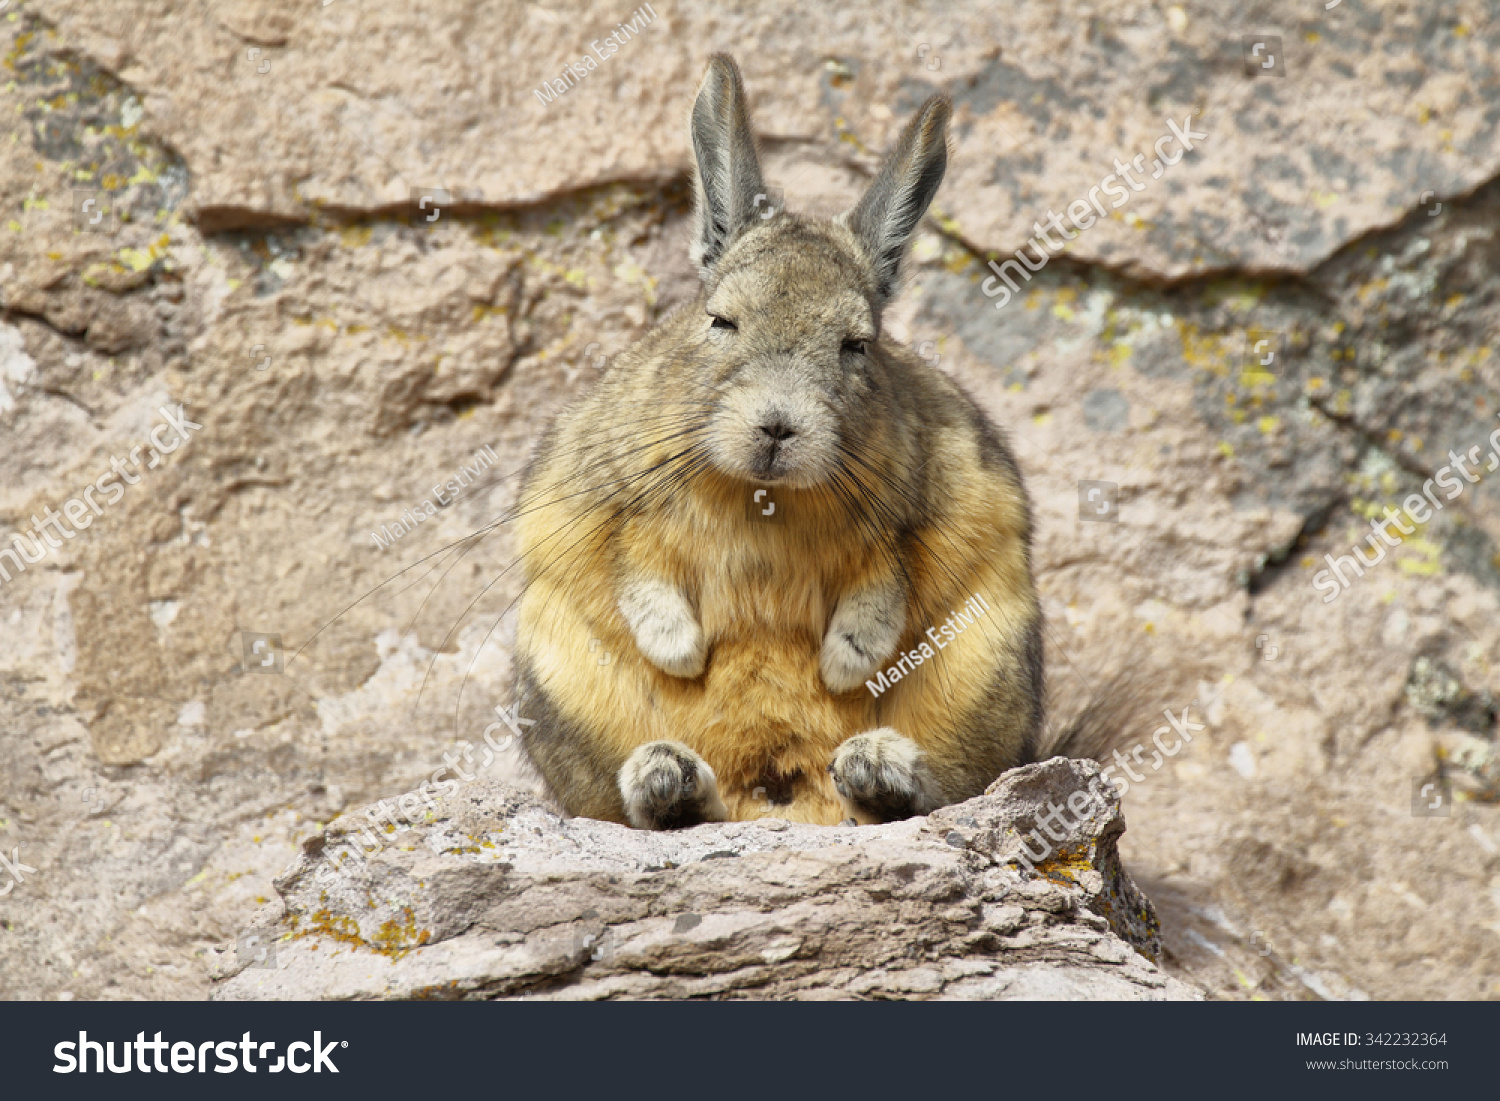 mountain viscacha lagidium viscacia sitting on stock photo 342232364 shutterstock. Black Bedroom Furniture Sets. Home Design Ideas